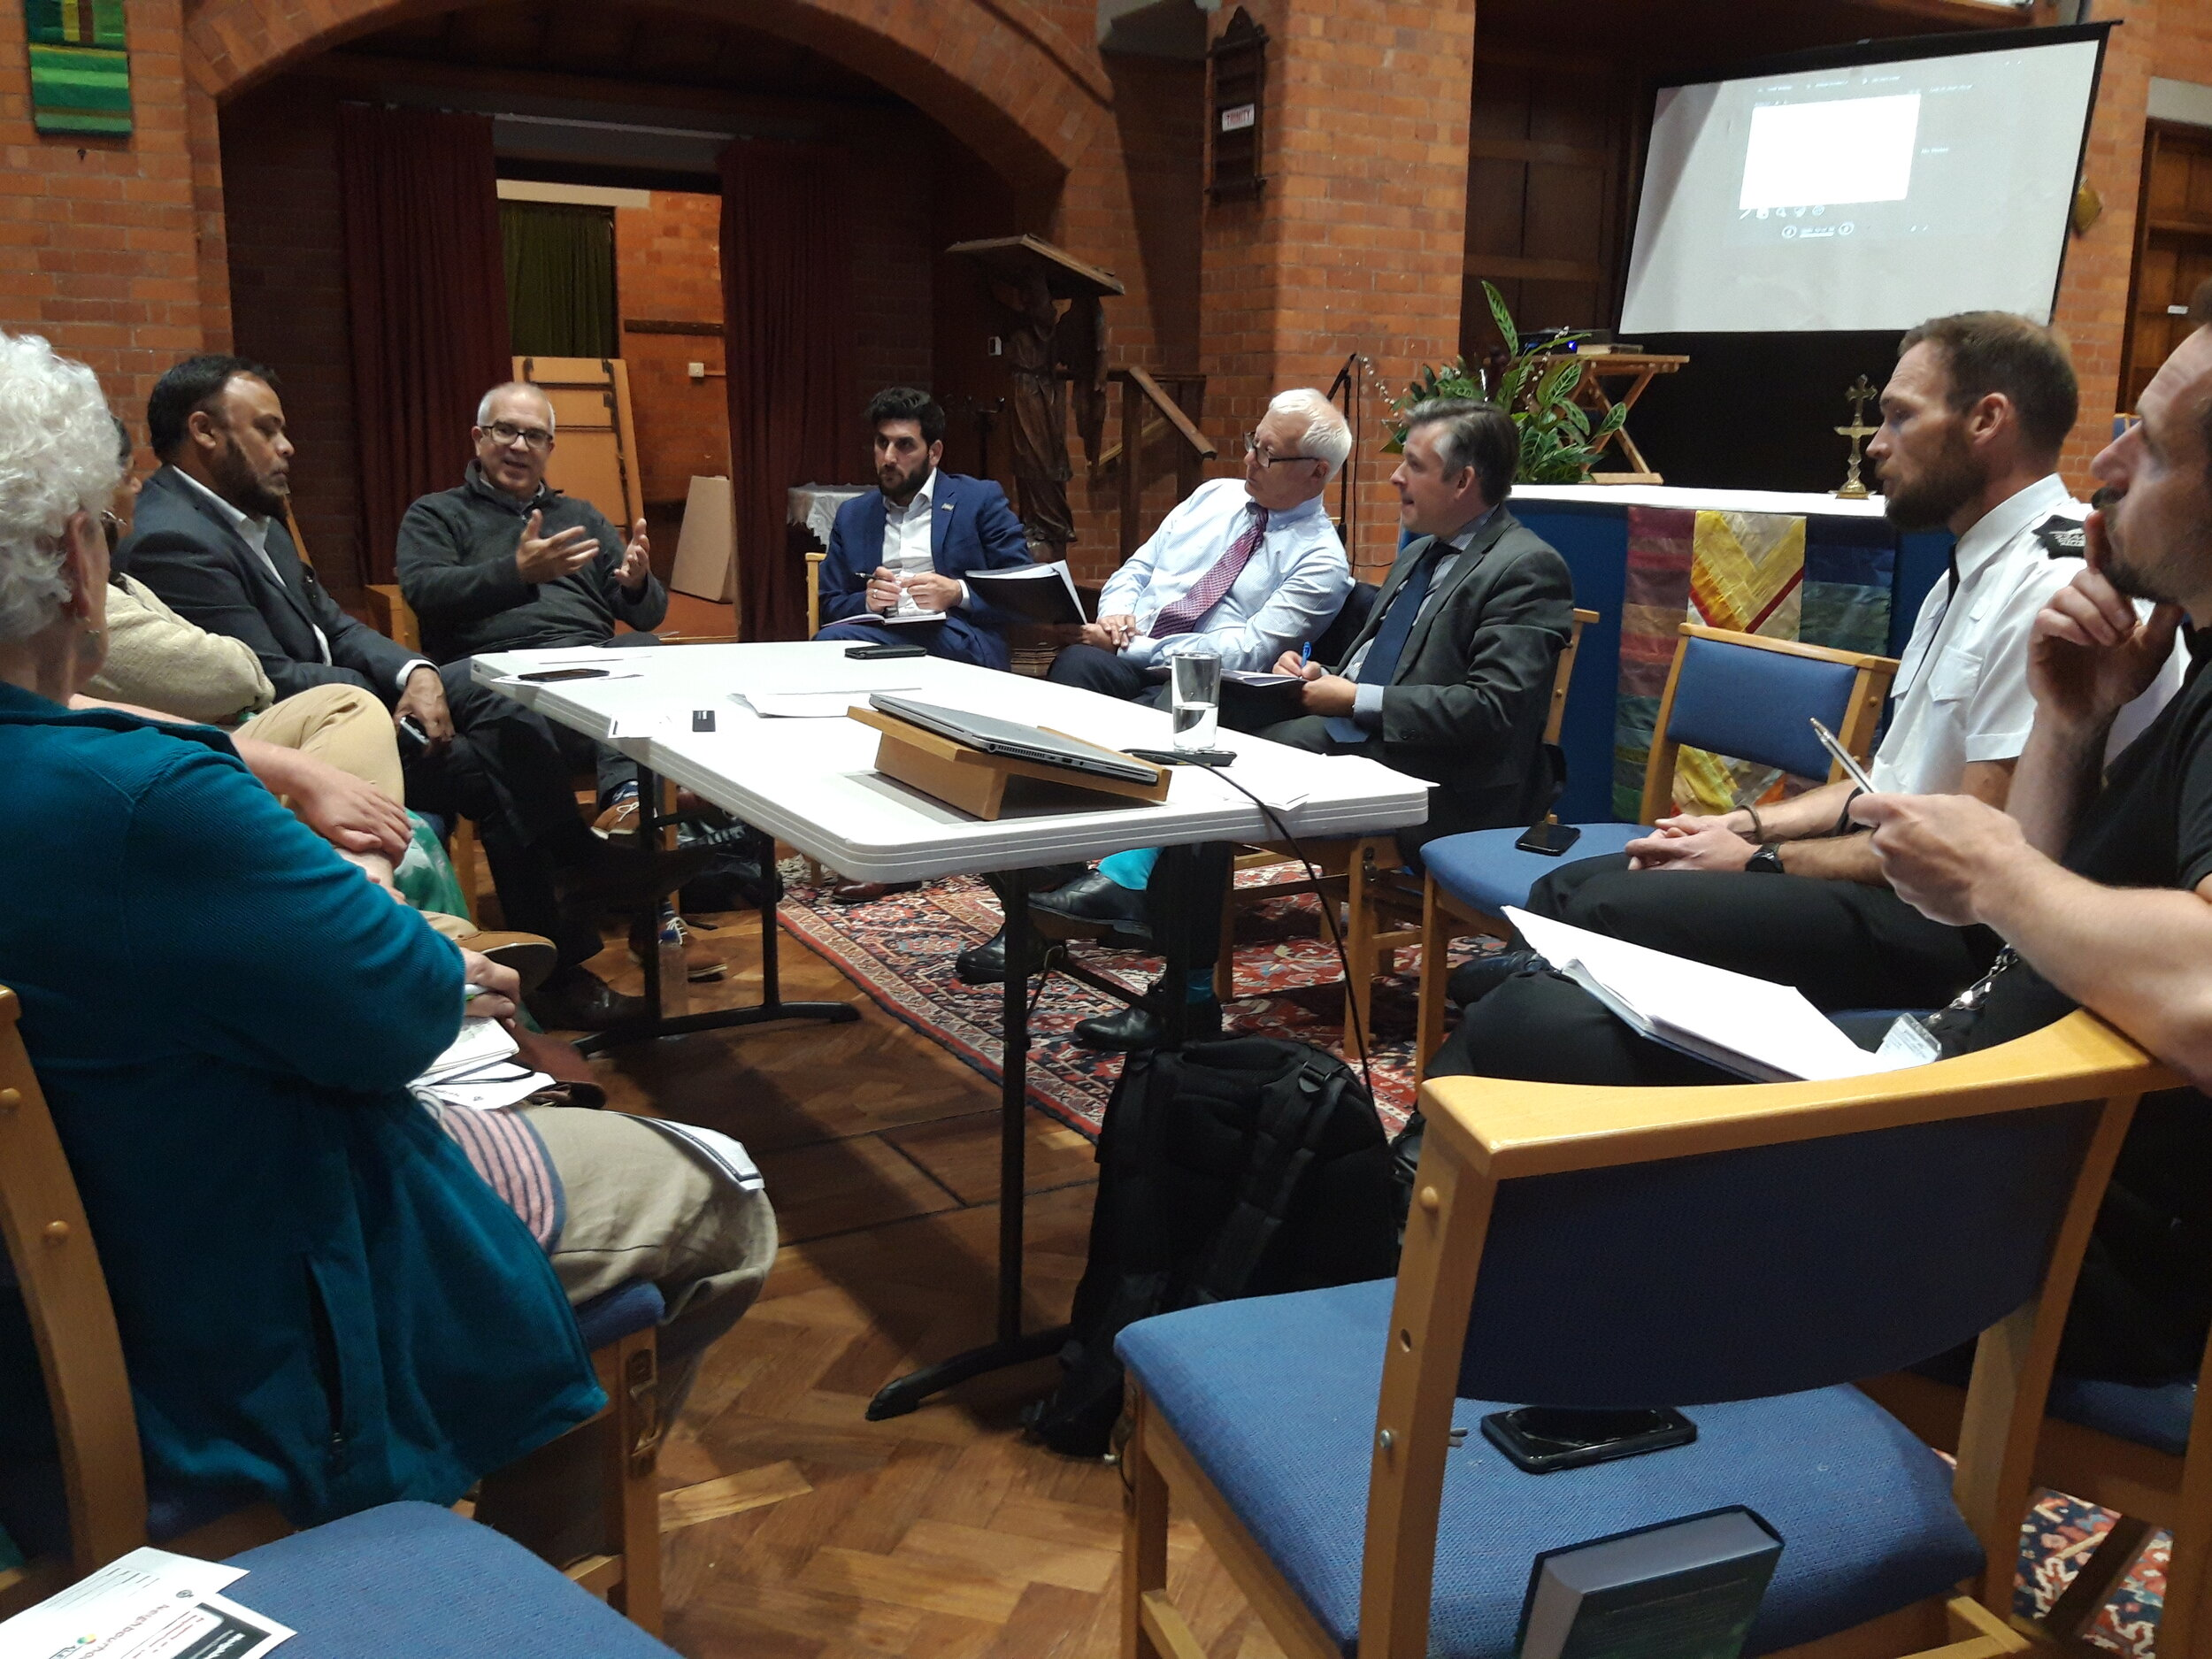 Jon and Police & Crime Commissioner Lord Bach met with local police, Councillors and residents to discuss crime in the Evington Road area - Friday September 13 2019